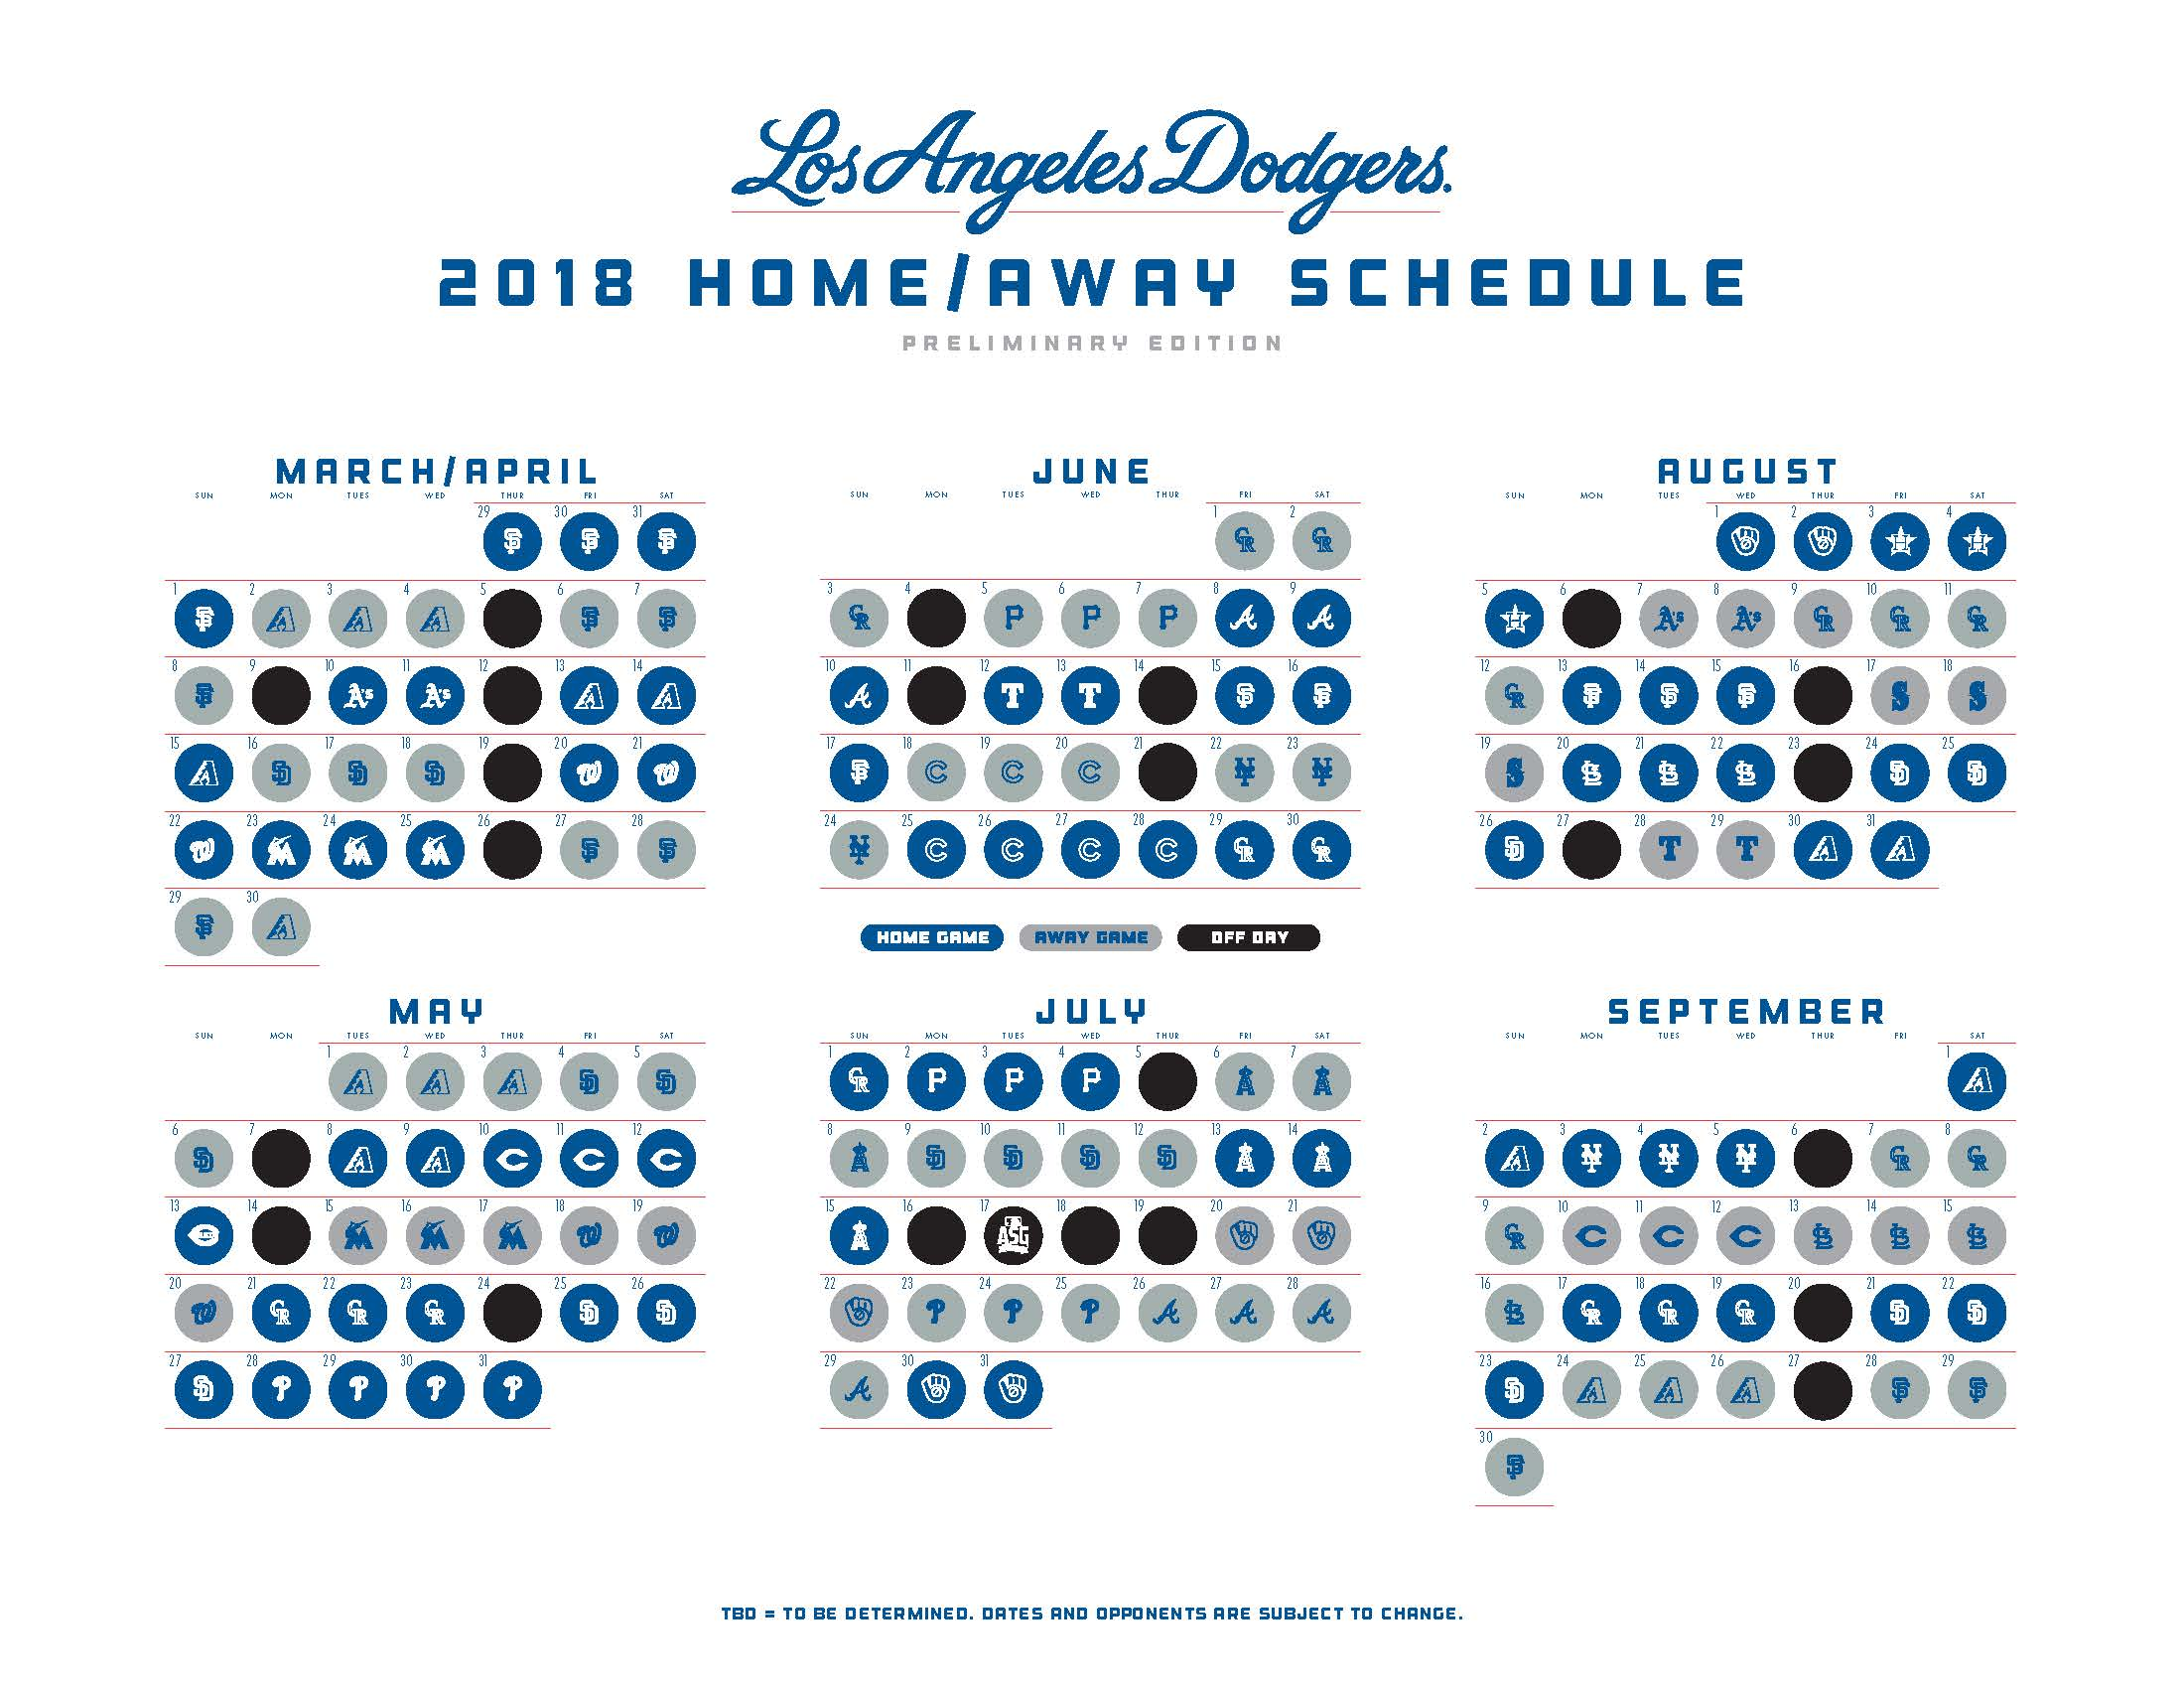 photo about Dodger Schedule Printable identify Dodger Tickets Agenda Illustrations and Types